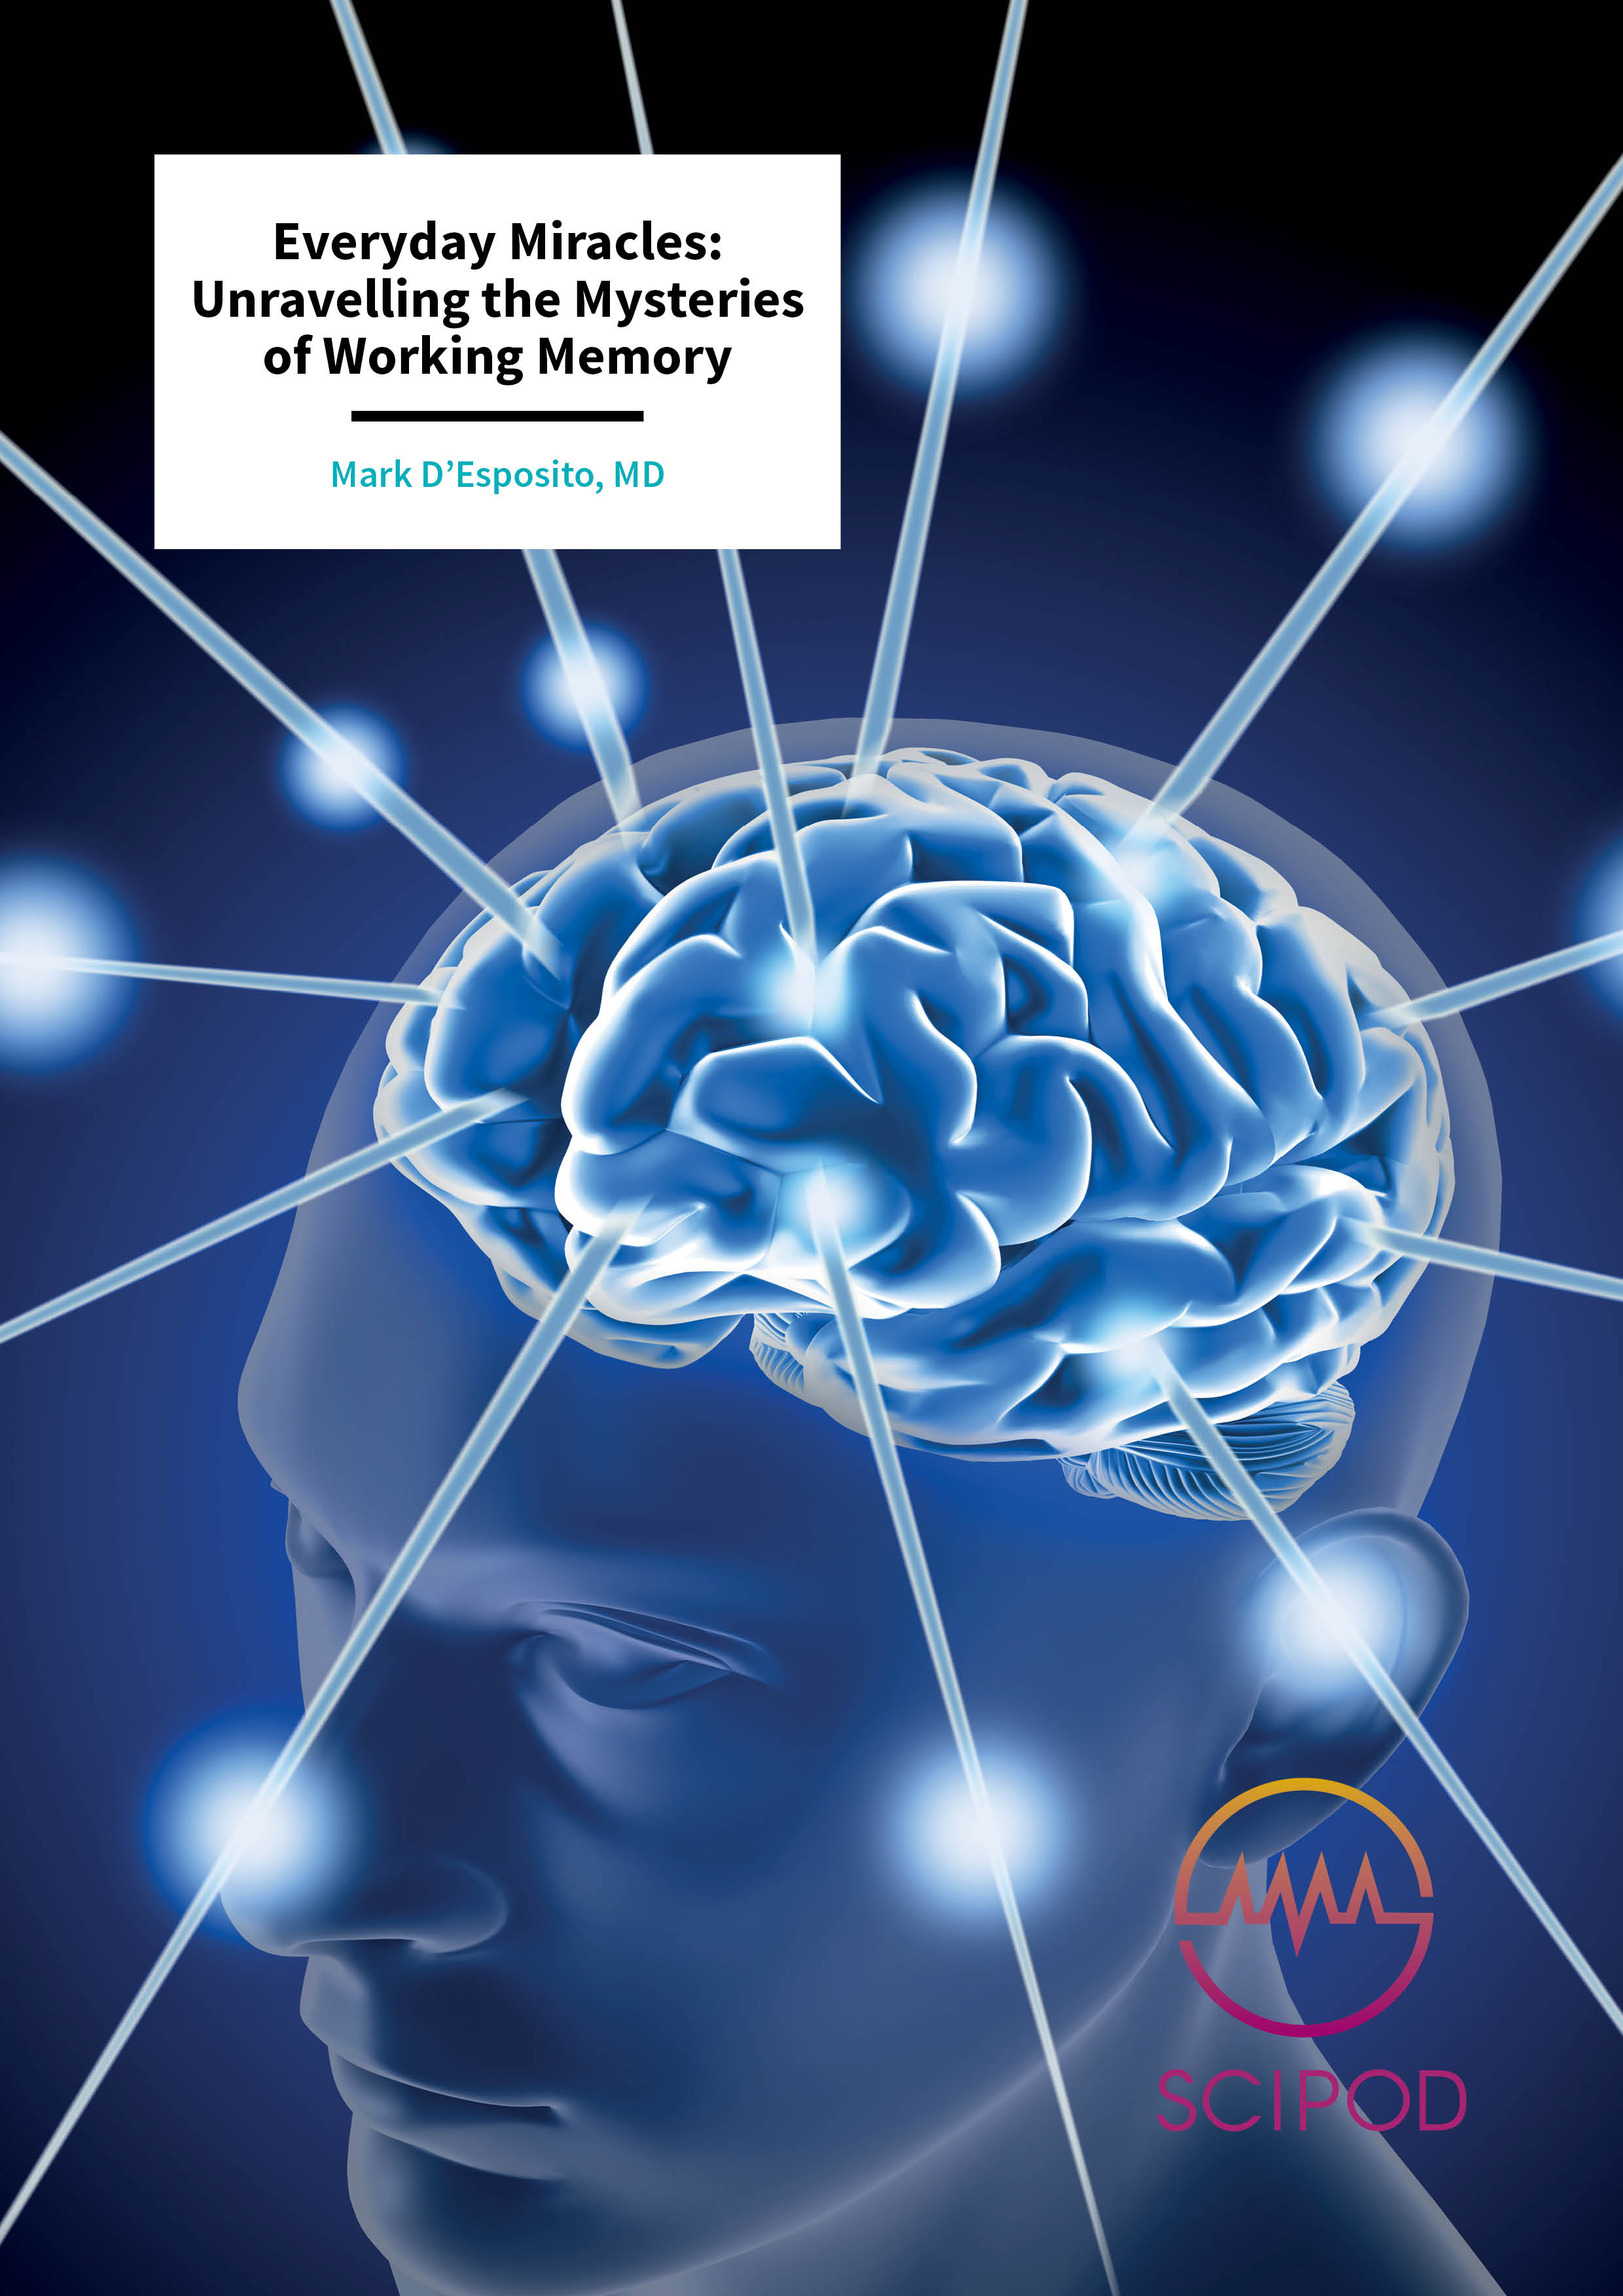 Unravelling the Mysteries of Working Memory – Mark D'Esposito, MD, University of California, Berkeley